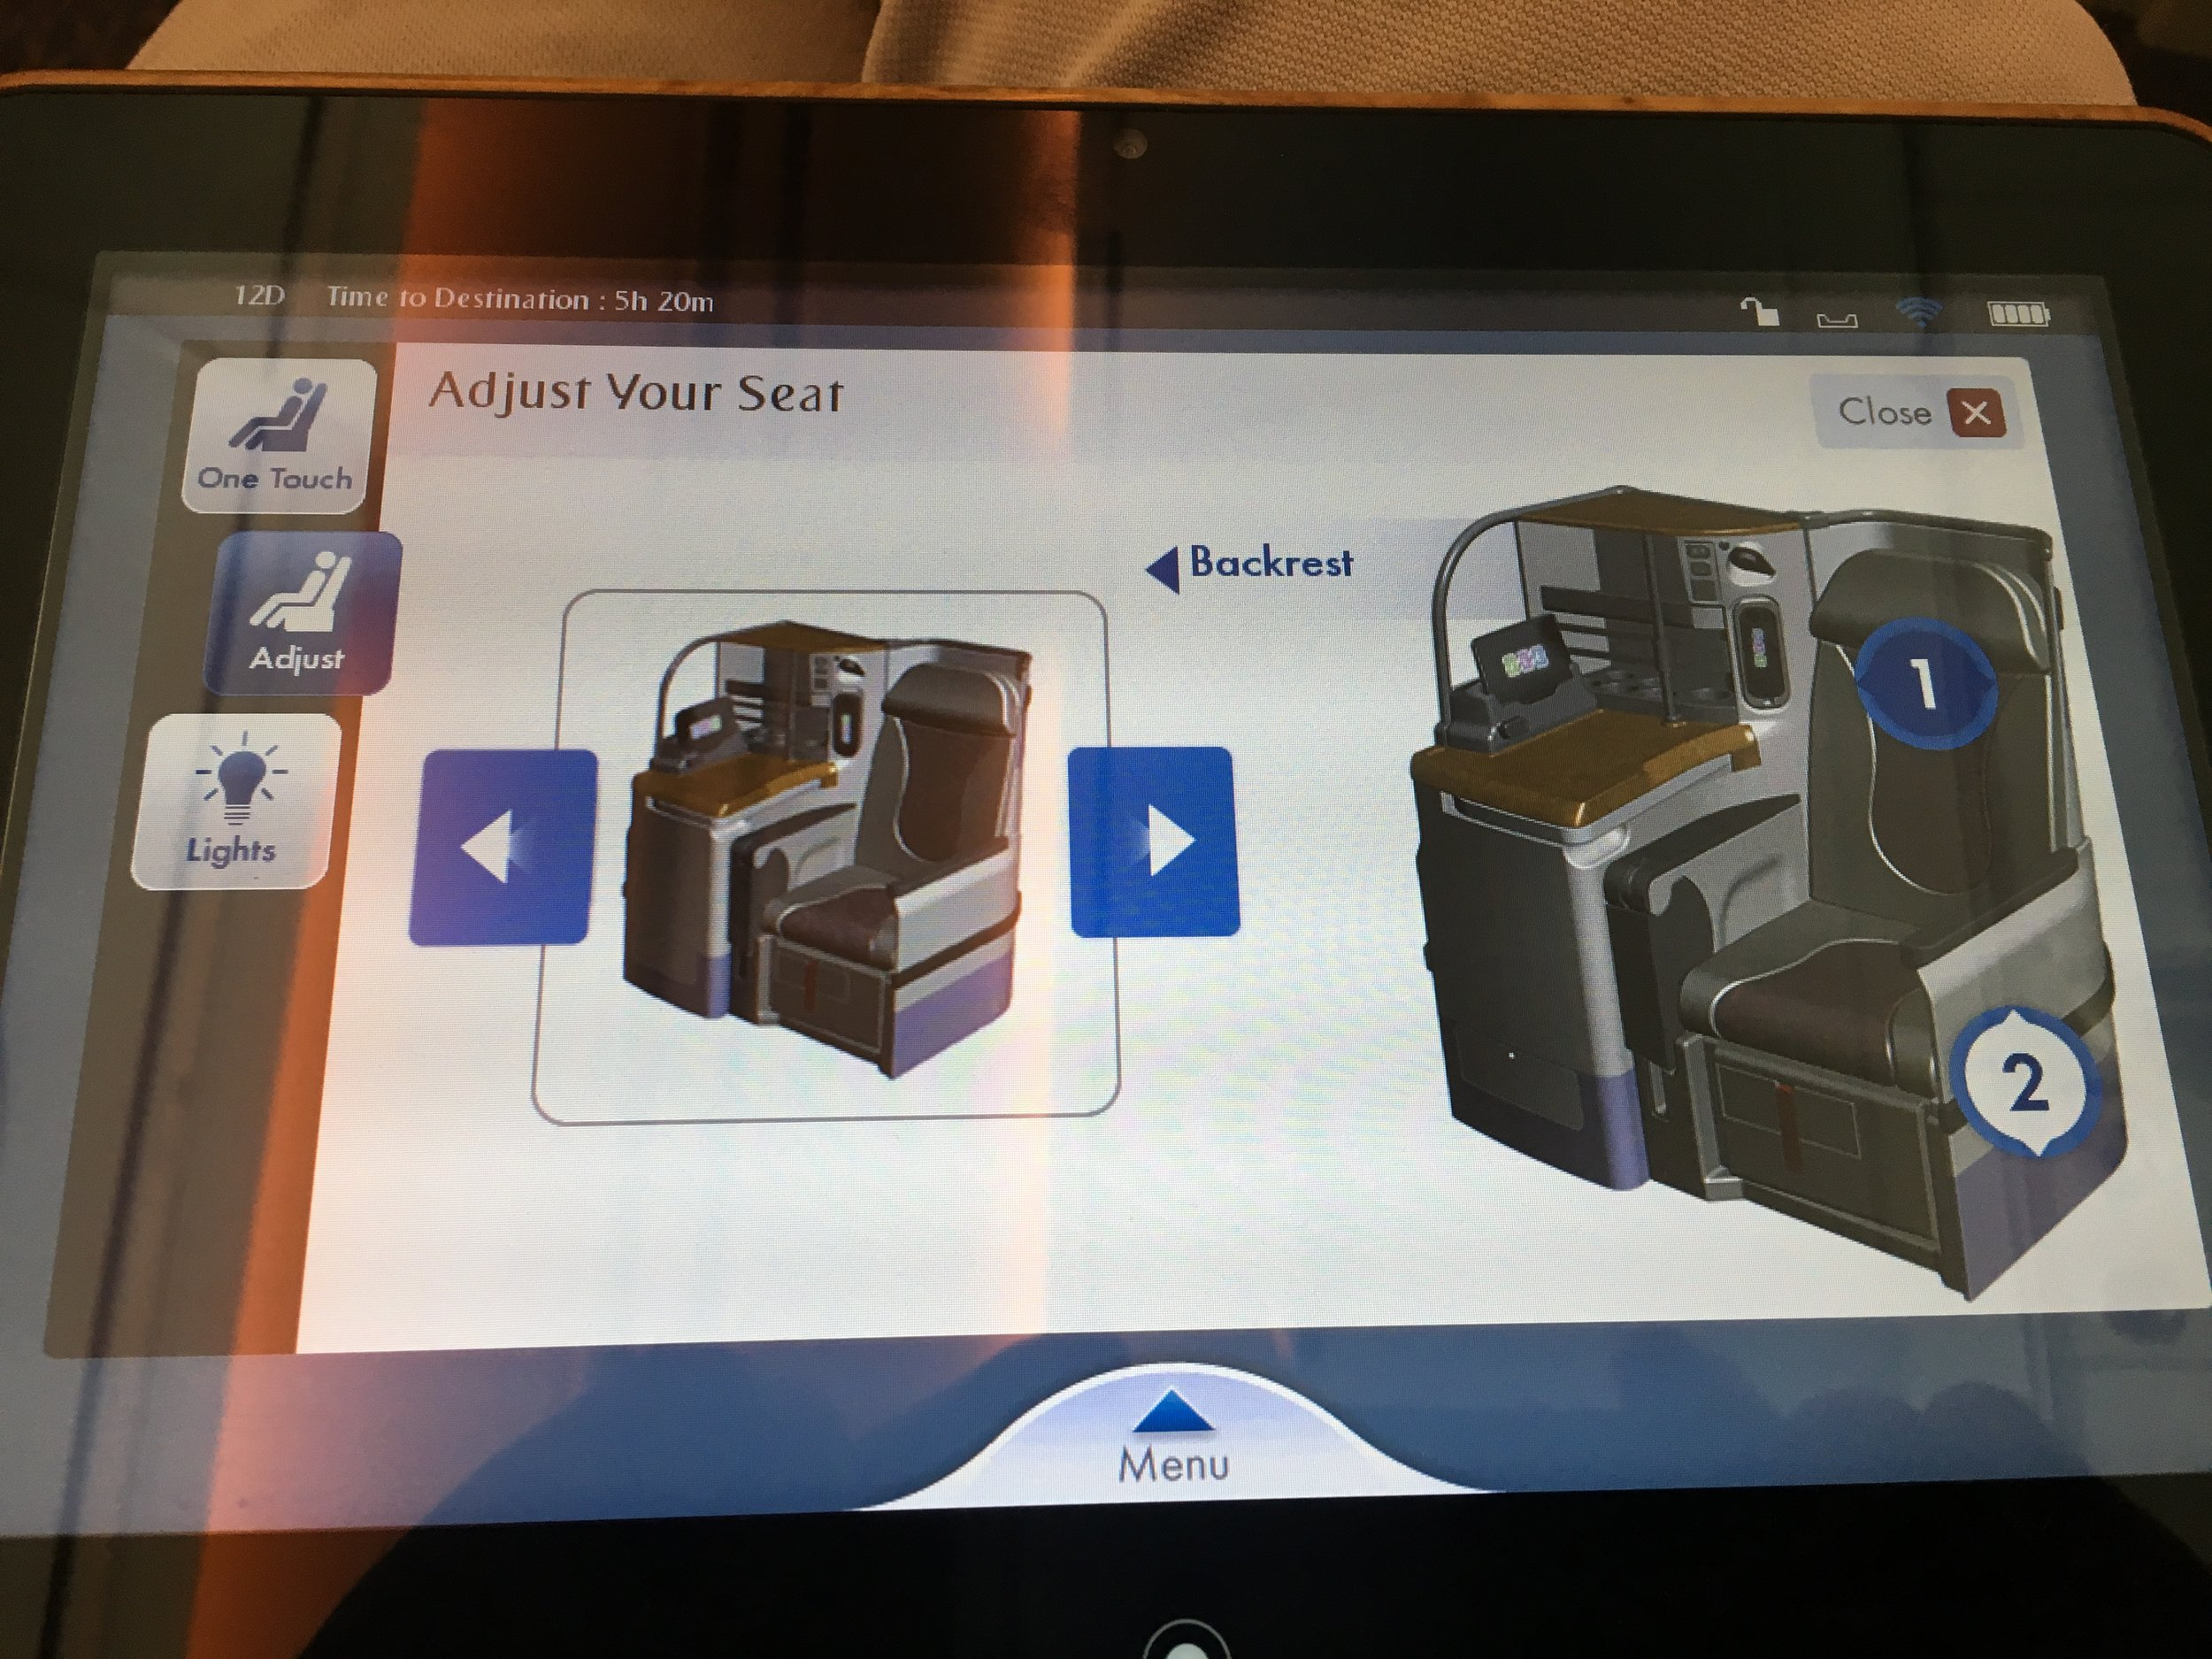 The seat is also adjustable via the tablet. This worked pretty well. The tablet was not as responsive as an iPad, but still ok.